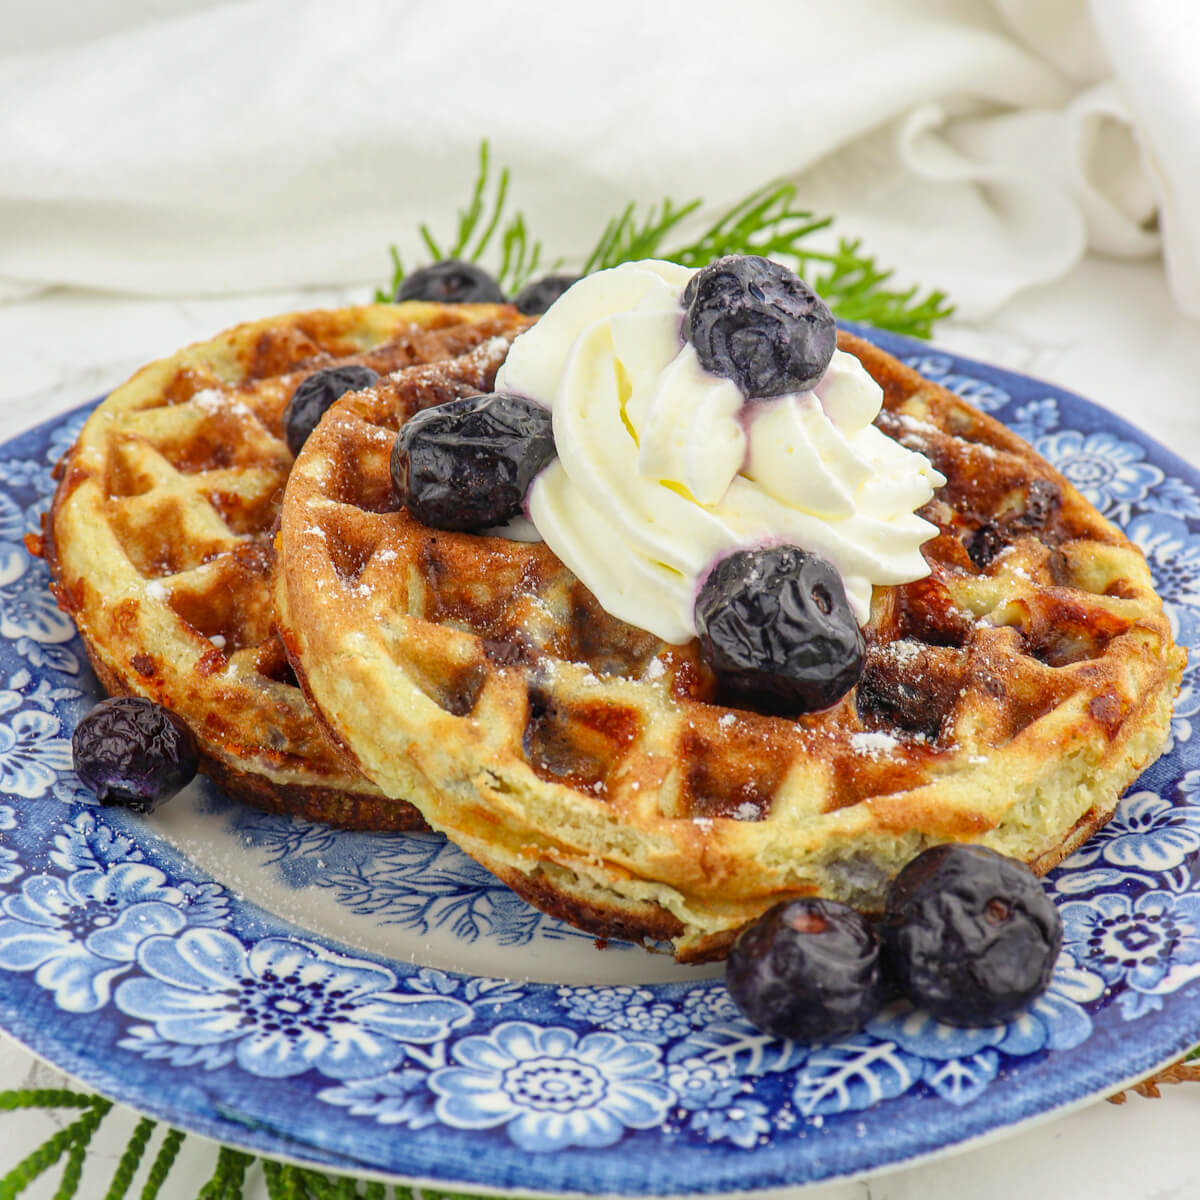 Delicious blueberry chaffles are a fabulous keto low carb breakfast! Gluten-free with classic blueberry morning flavor.